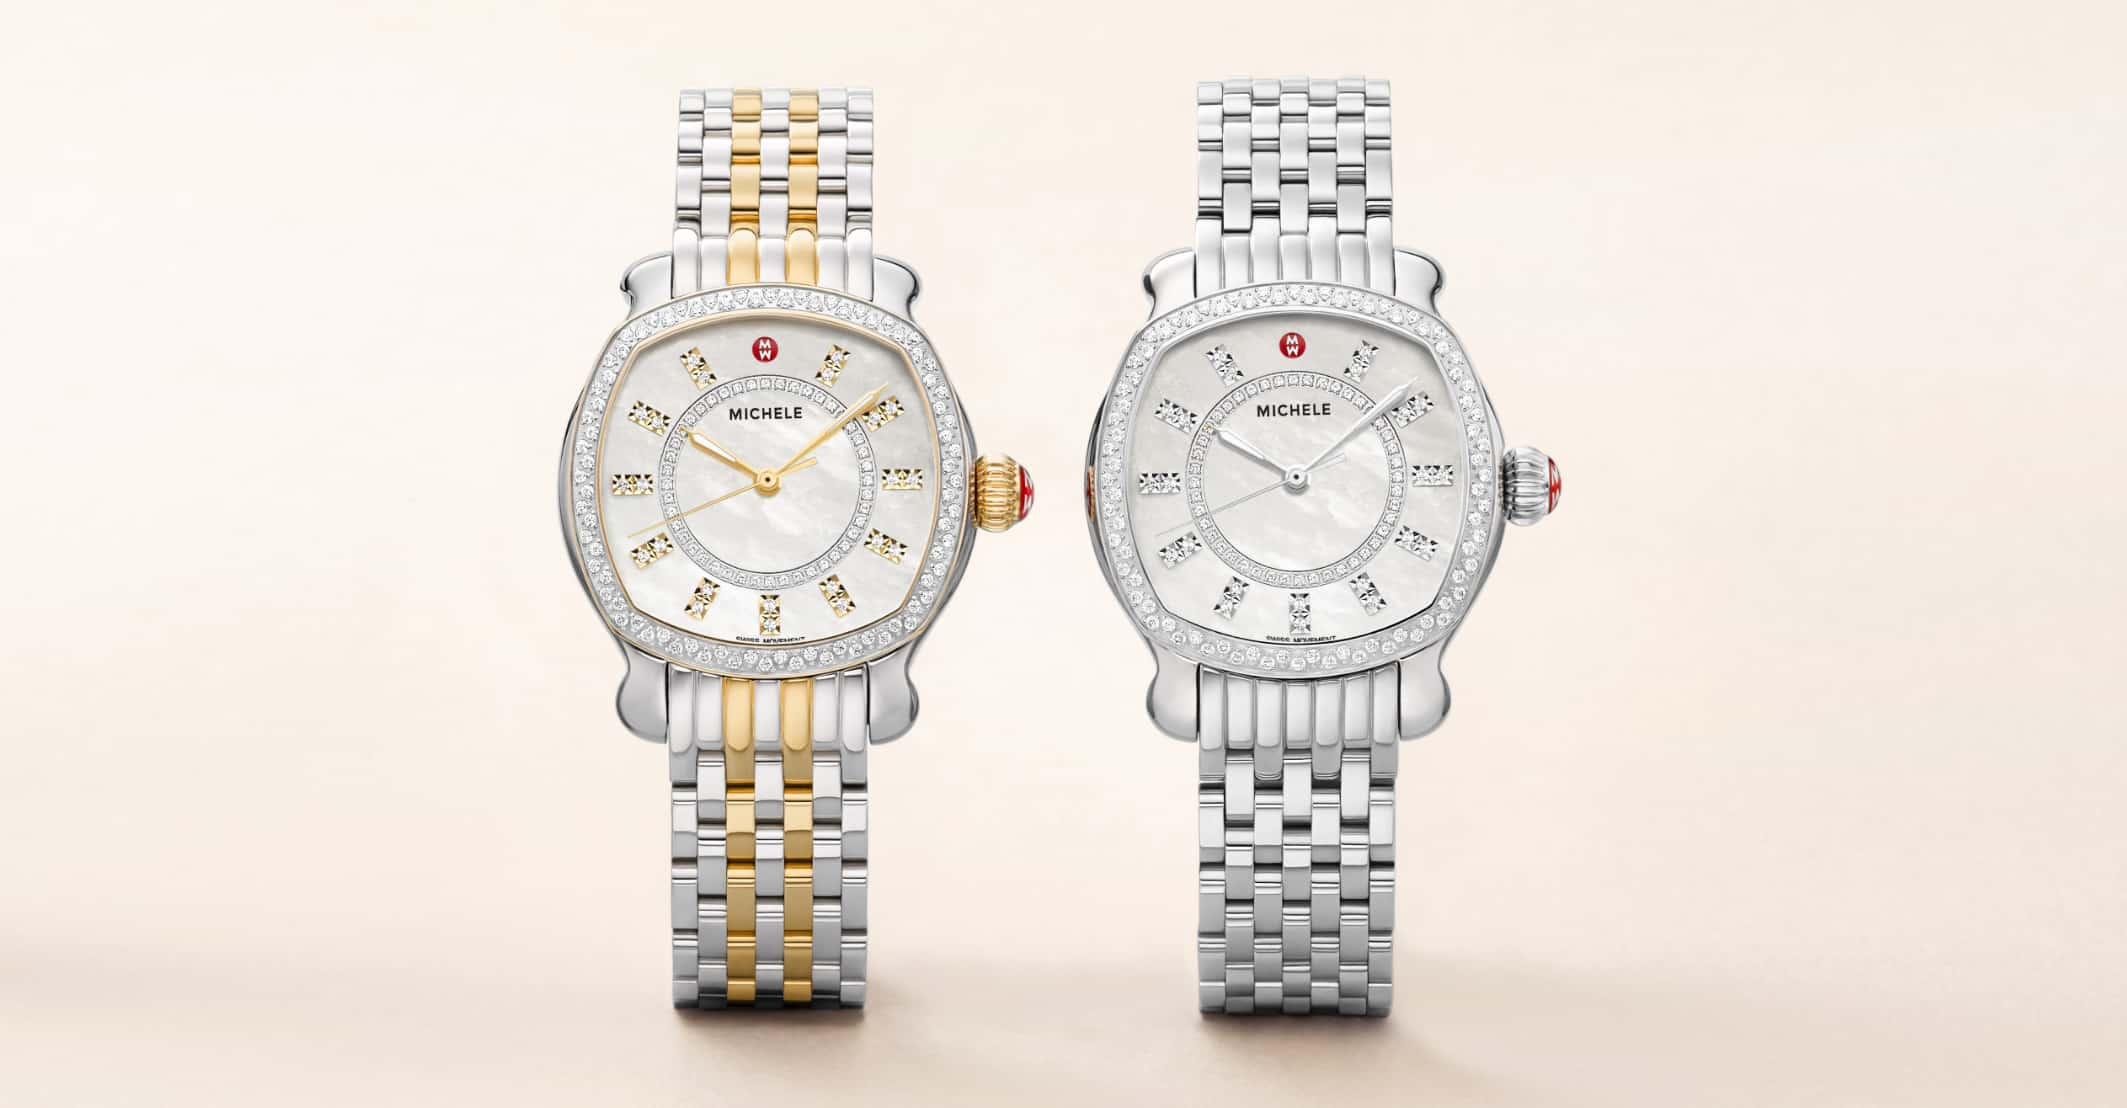 Two special-edition Lilou watch es featuring double-diamond indexes, diamond-covered topring in stainless and two-tone stainless with 18k gold.